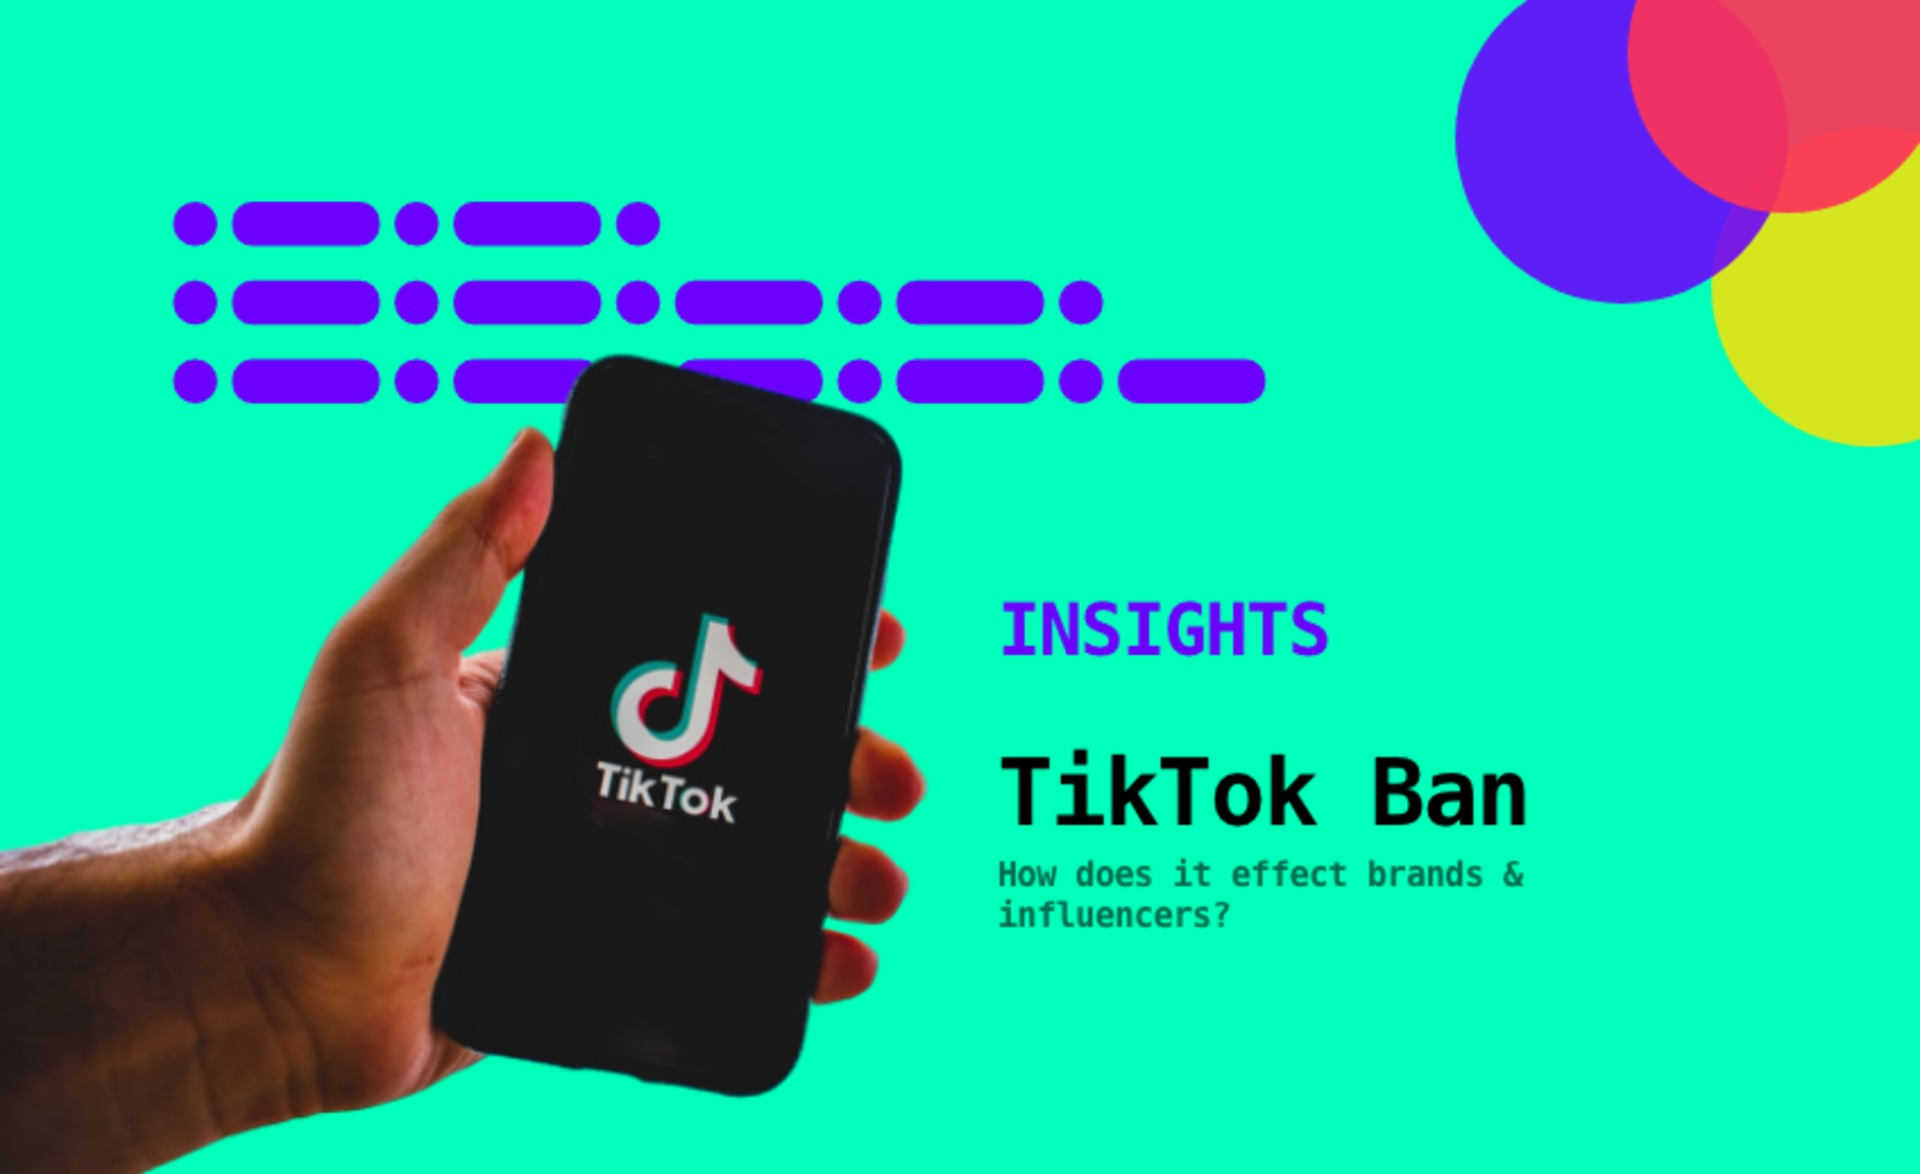 What the TikTok Ban Means for its Influencers, Creators & Brands image